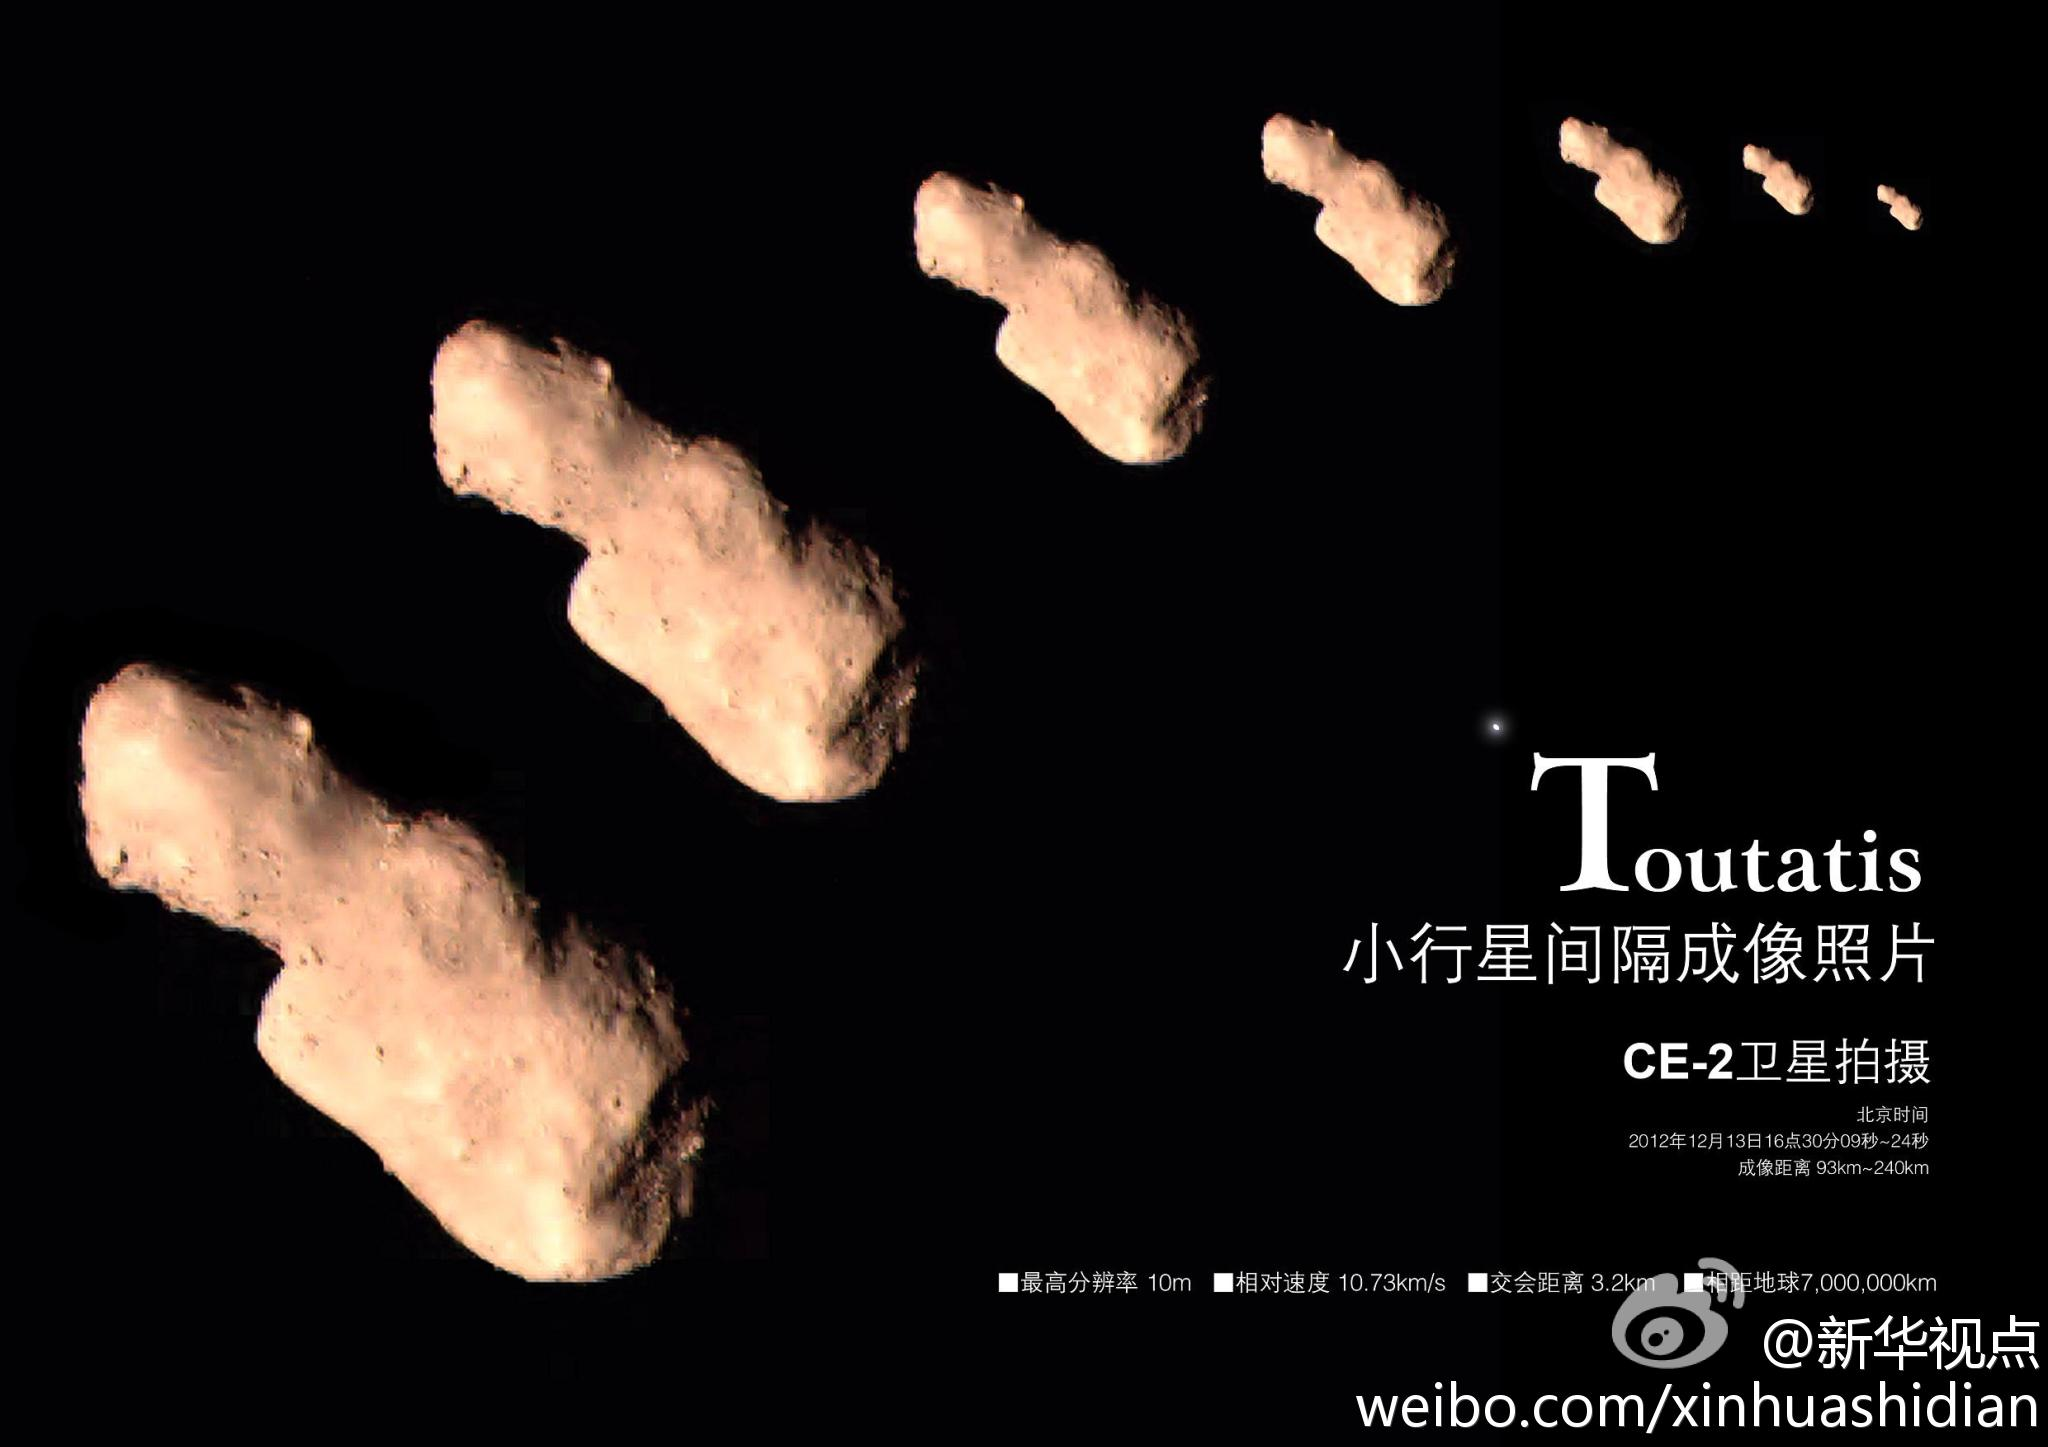 asteroid toutatis december 12 - photo #21